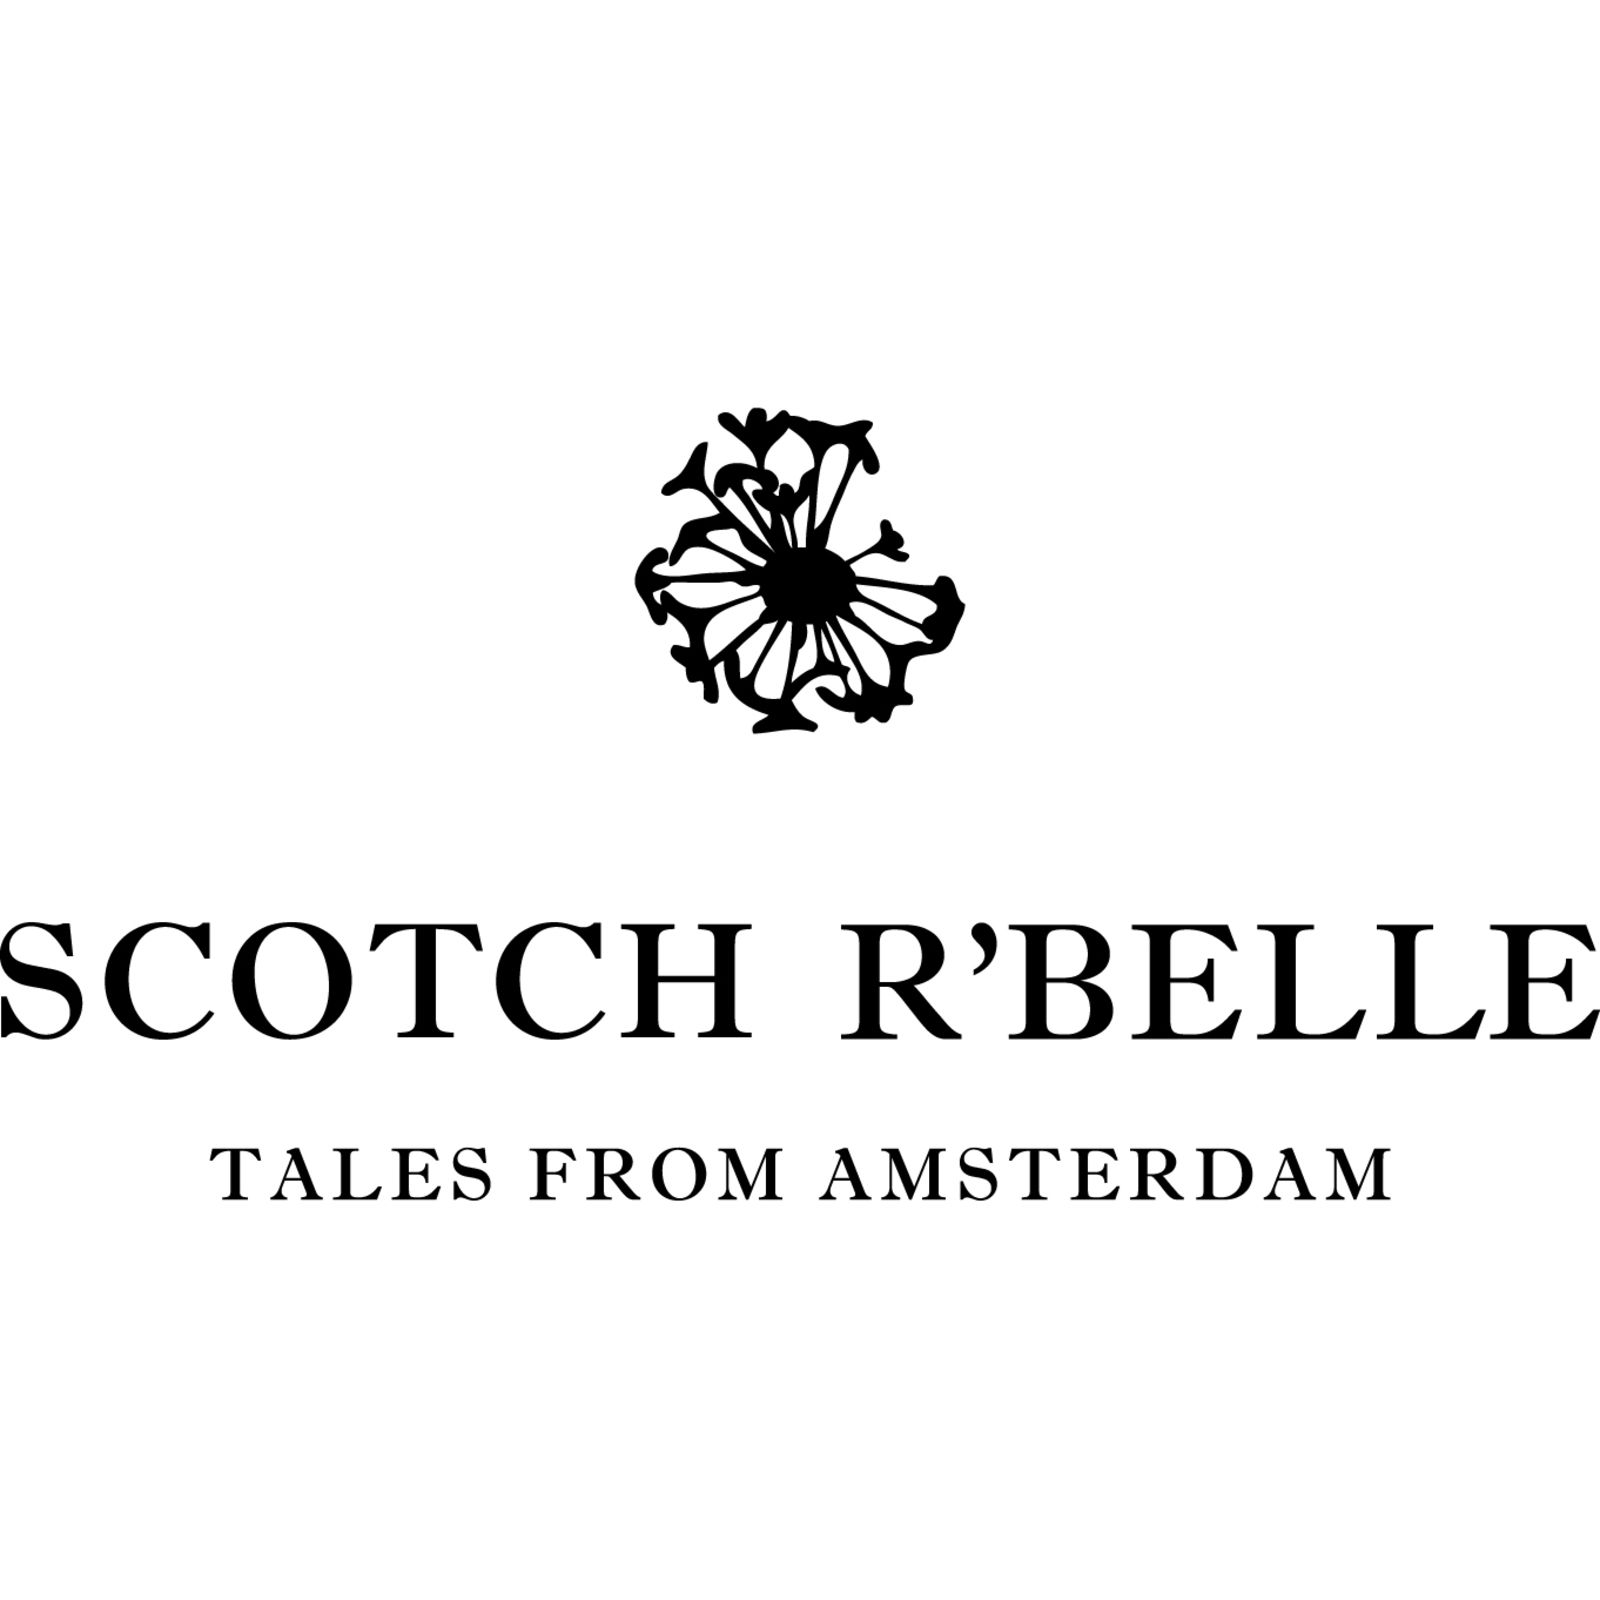 SCOTCH R'BELLE (Image 1)